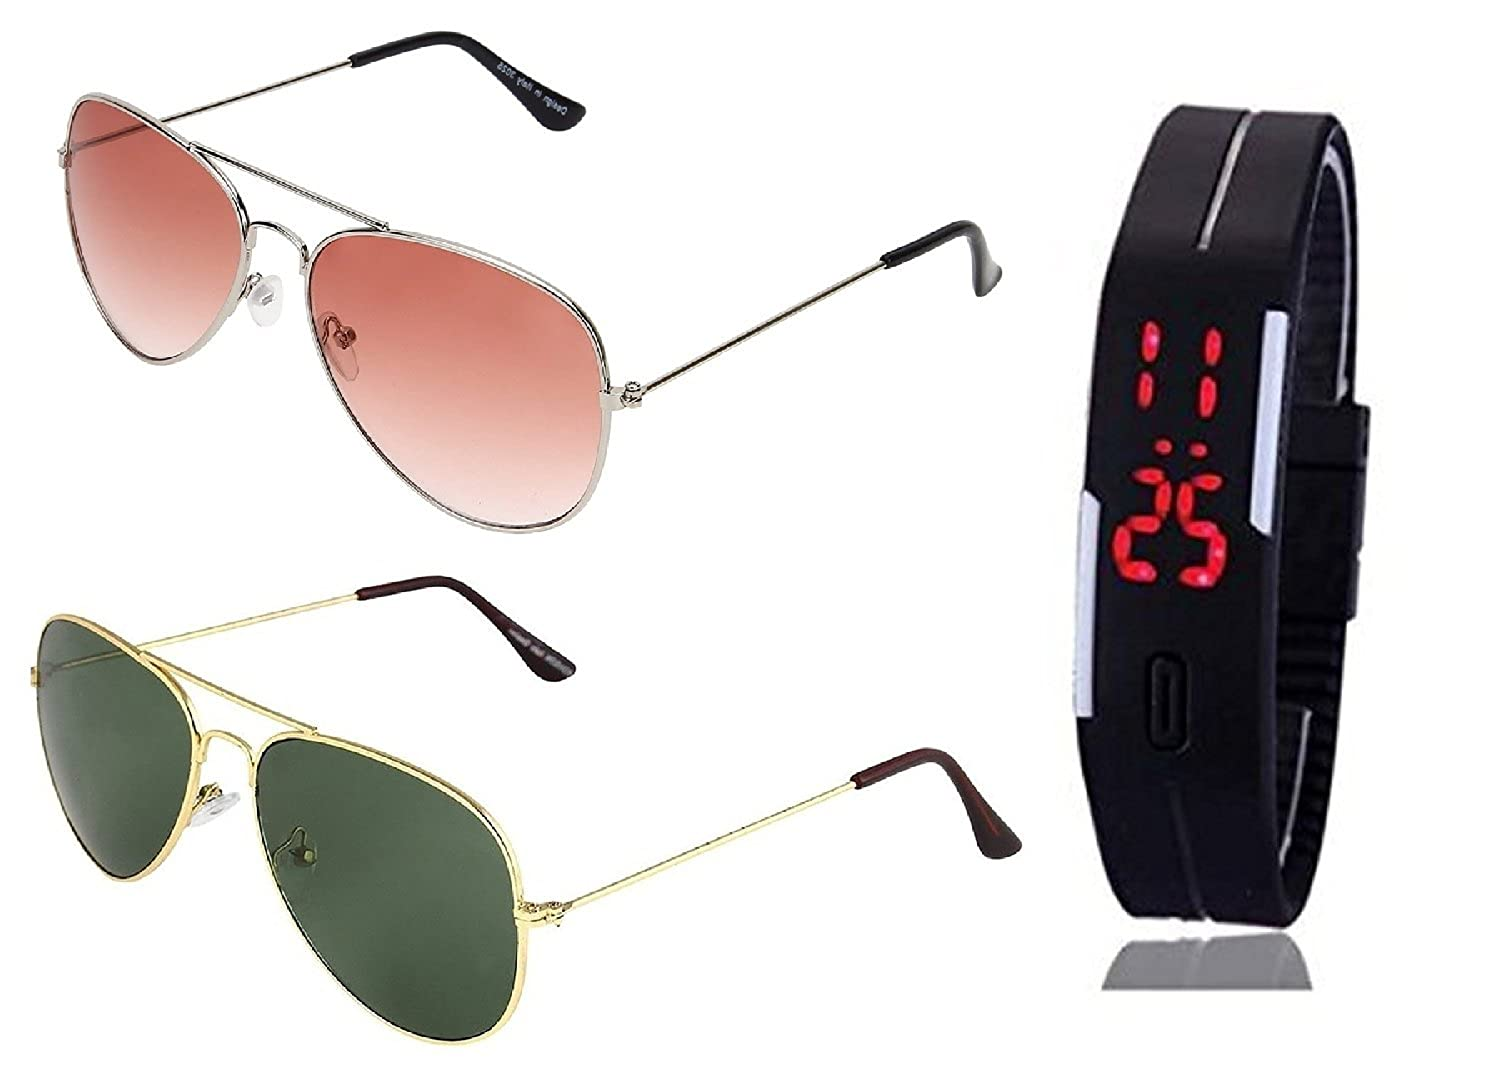 083a58c35a48 SHEOMY SUNGLASSES 2 COMBO OF SILVER ORANGE AVIATOR SUNGLASSES AND AVIATOR  GOLDEN GREEN SUNGLASSES WITH TPU BAND RED LED DIGITAL BLACK DIAL UNISEX  WATCH Best ...